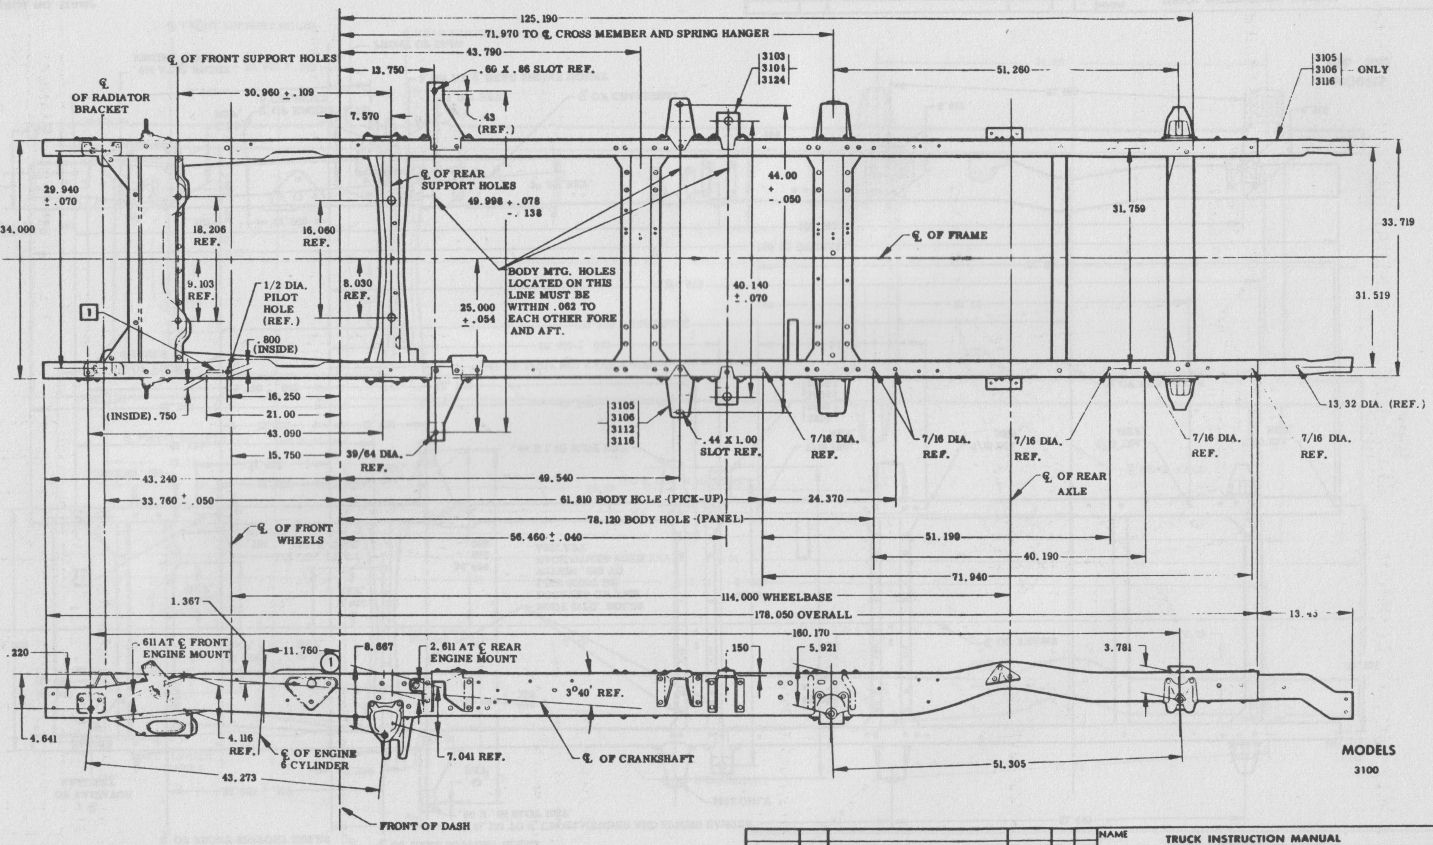 1126890 65 Ford F100 Wiring Diagrams also Automotive blueprints furthermore Showthread moreover 1963 Ford F100 Frame Diagram moreover Tbird1967 gauge. on 1956 ford customline